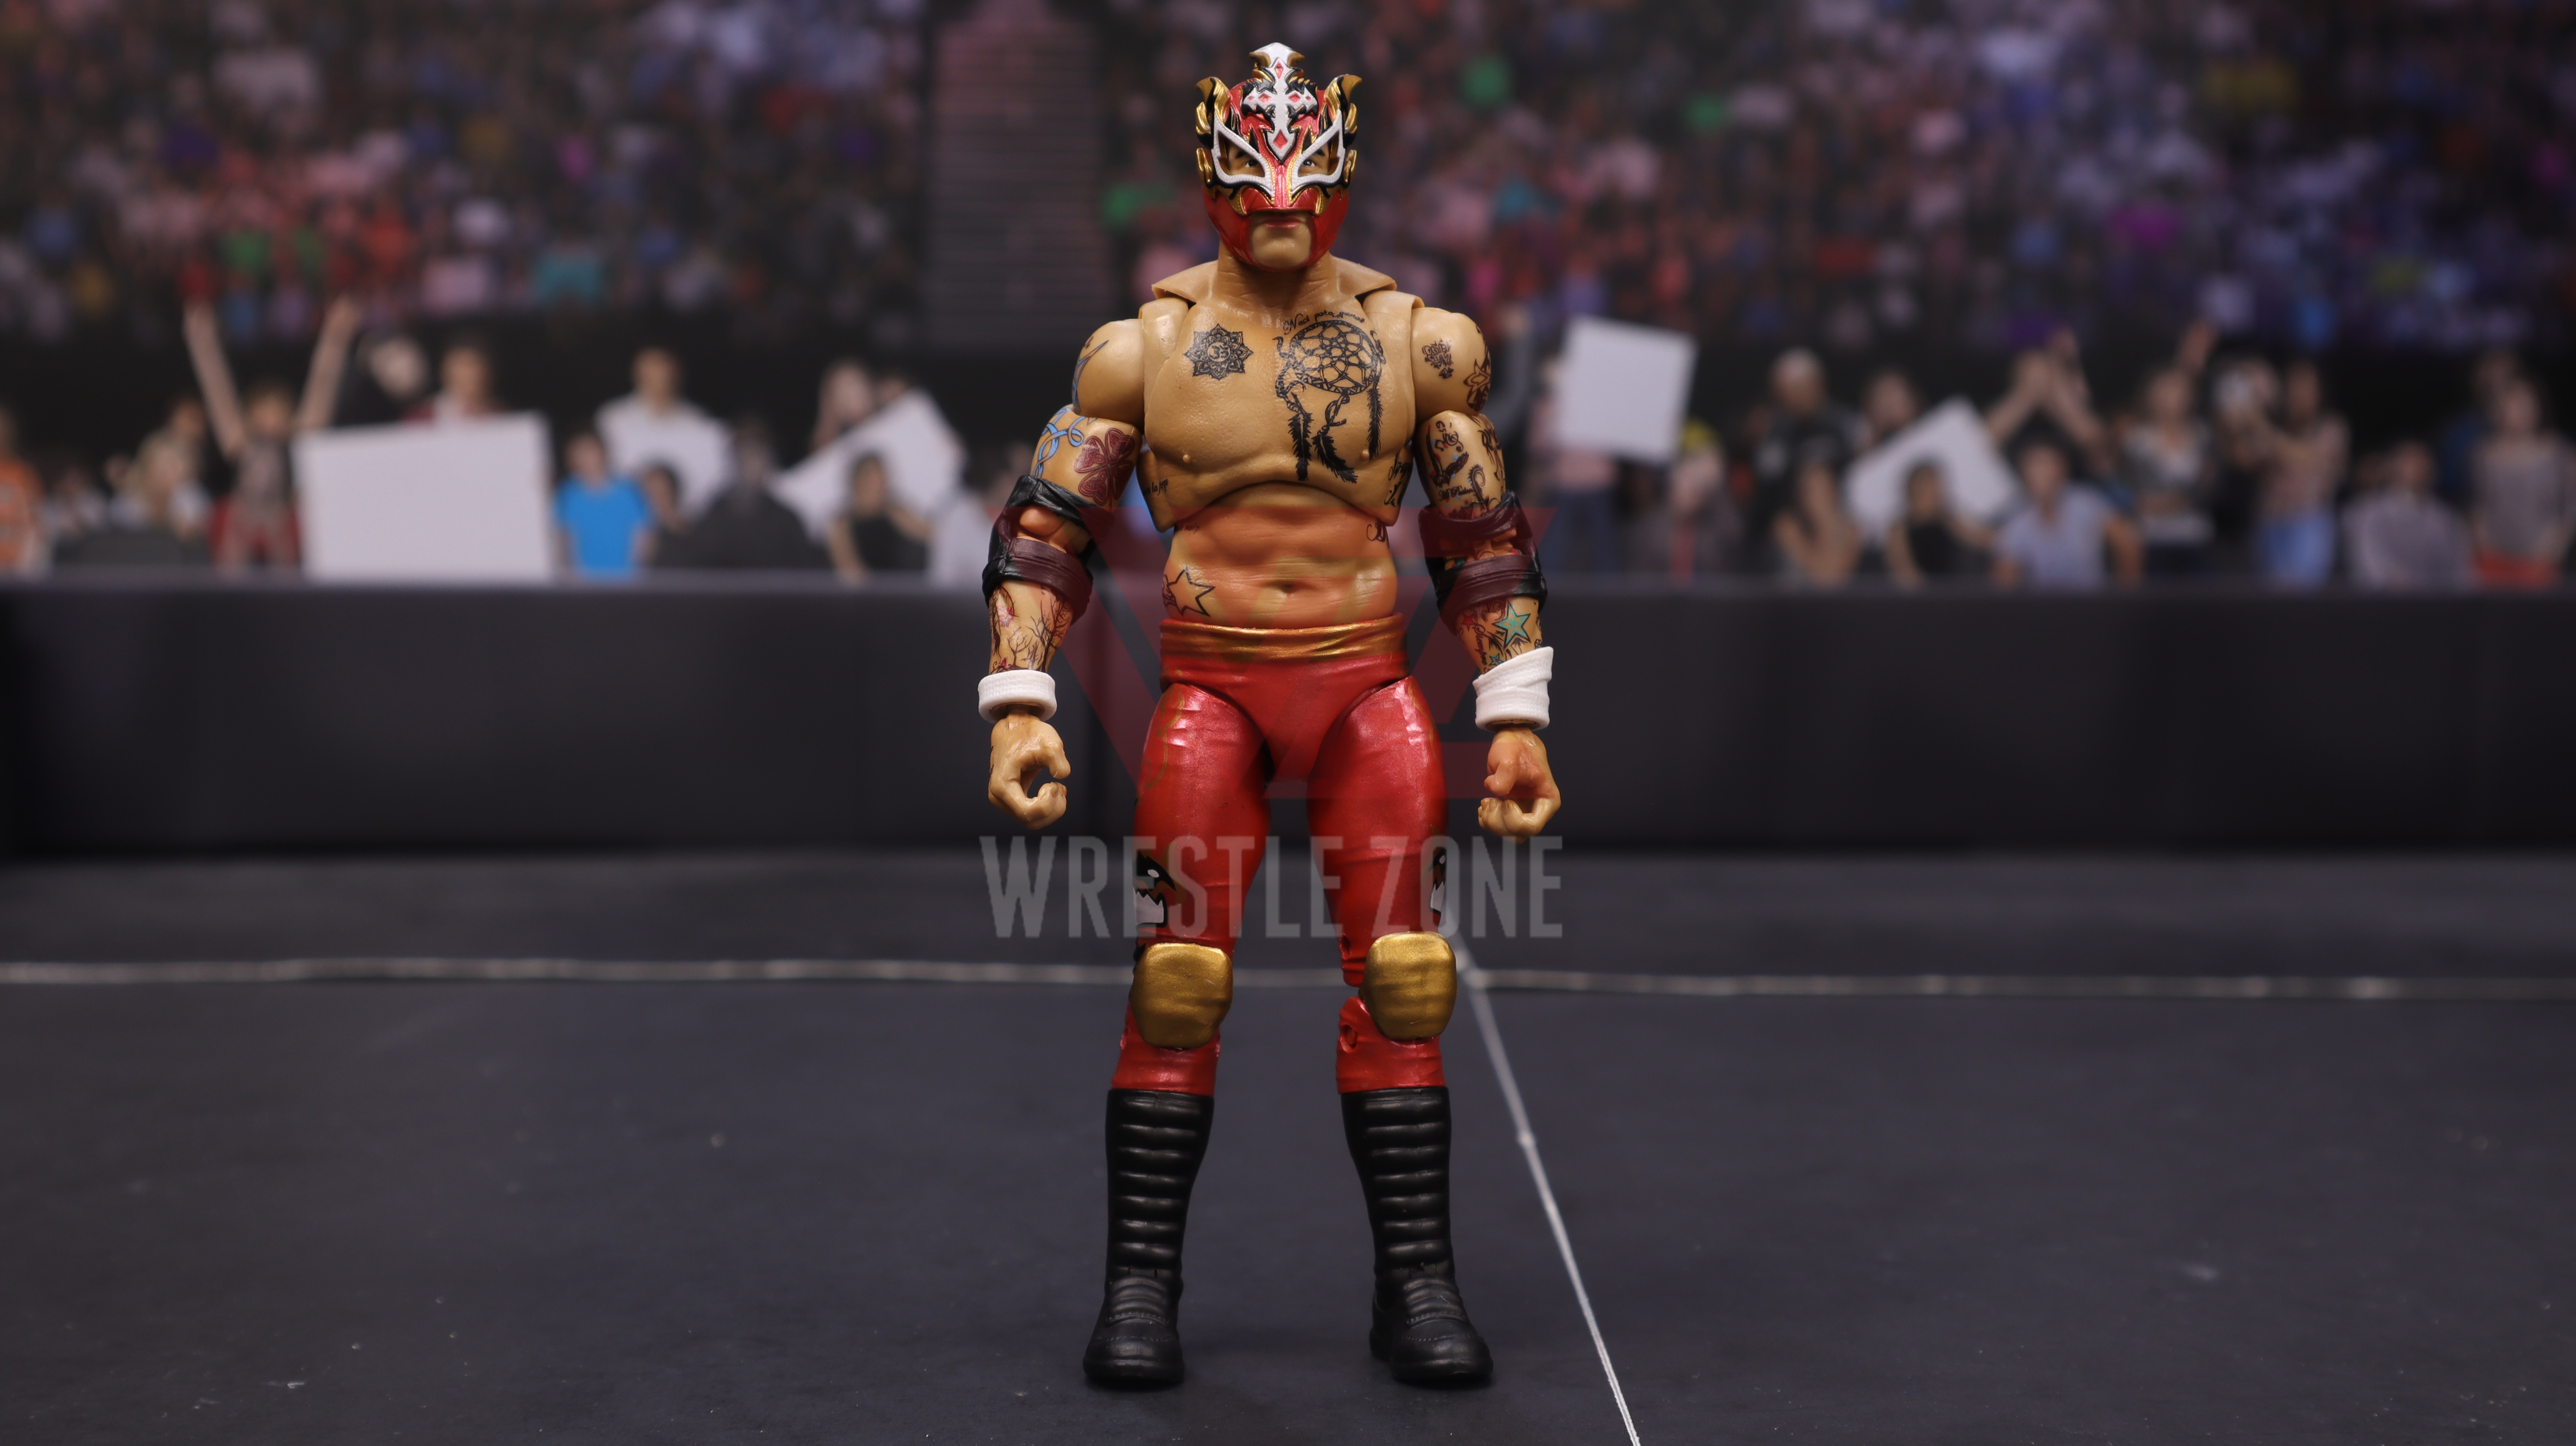 wz_legendsofluchalibre_series1_rey_20210219_2778